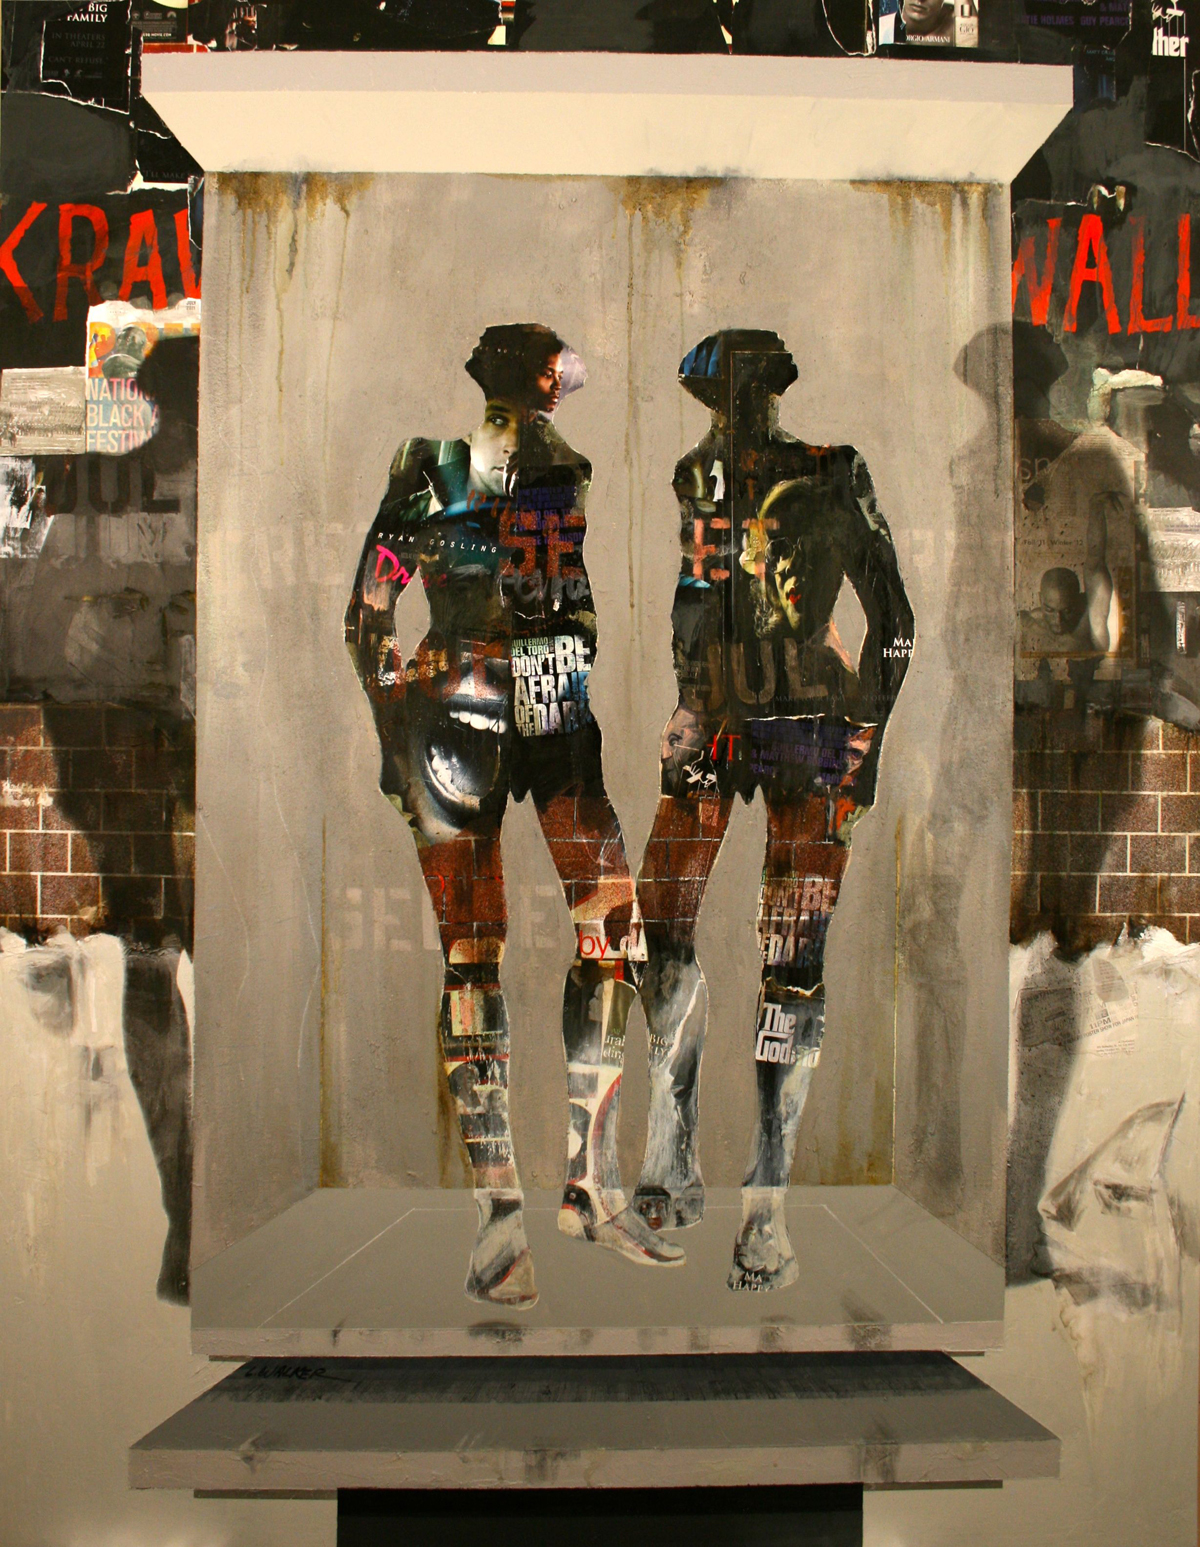 Larry Walker, Interior Exterior Portals, 2011, acrylic with collage elements, 78 x 60 inches